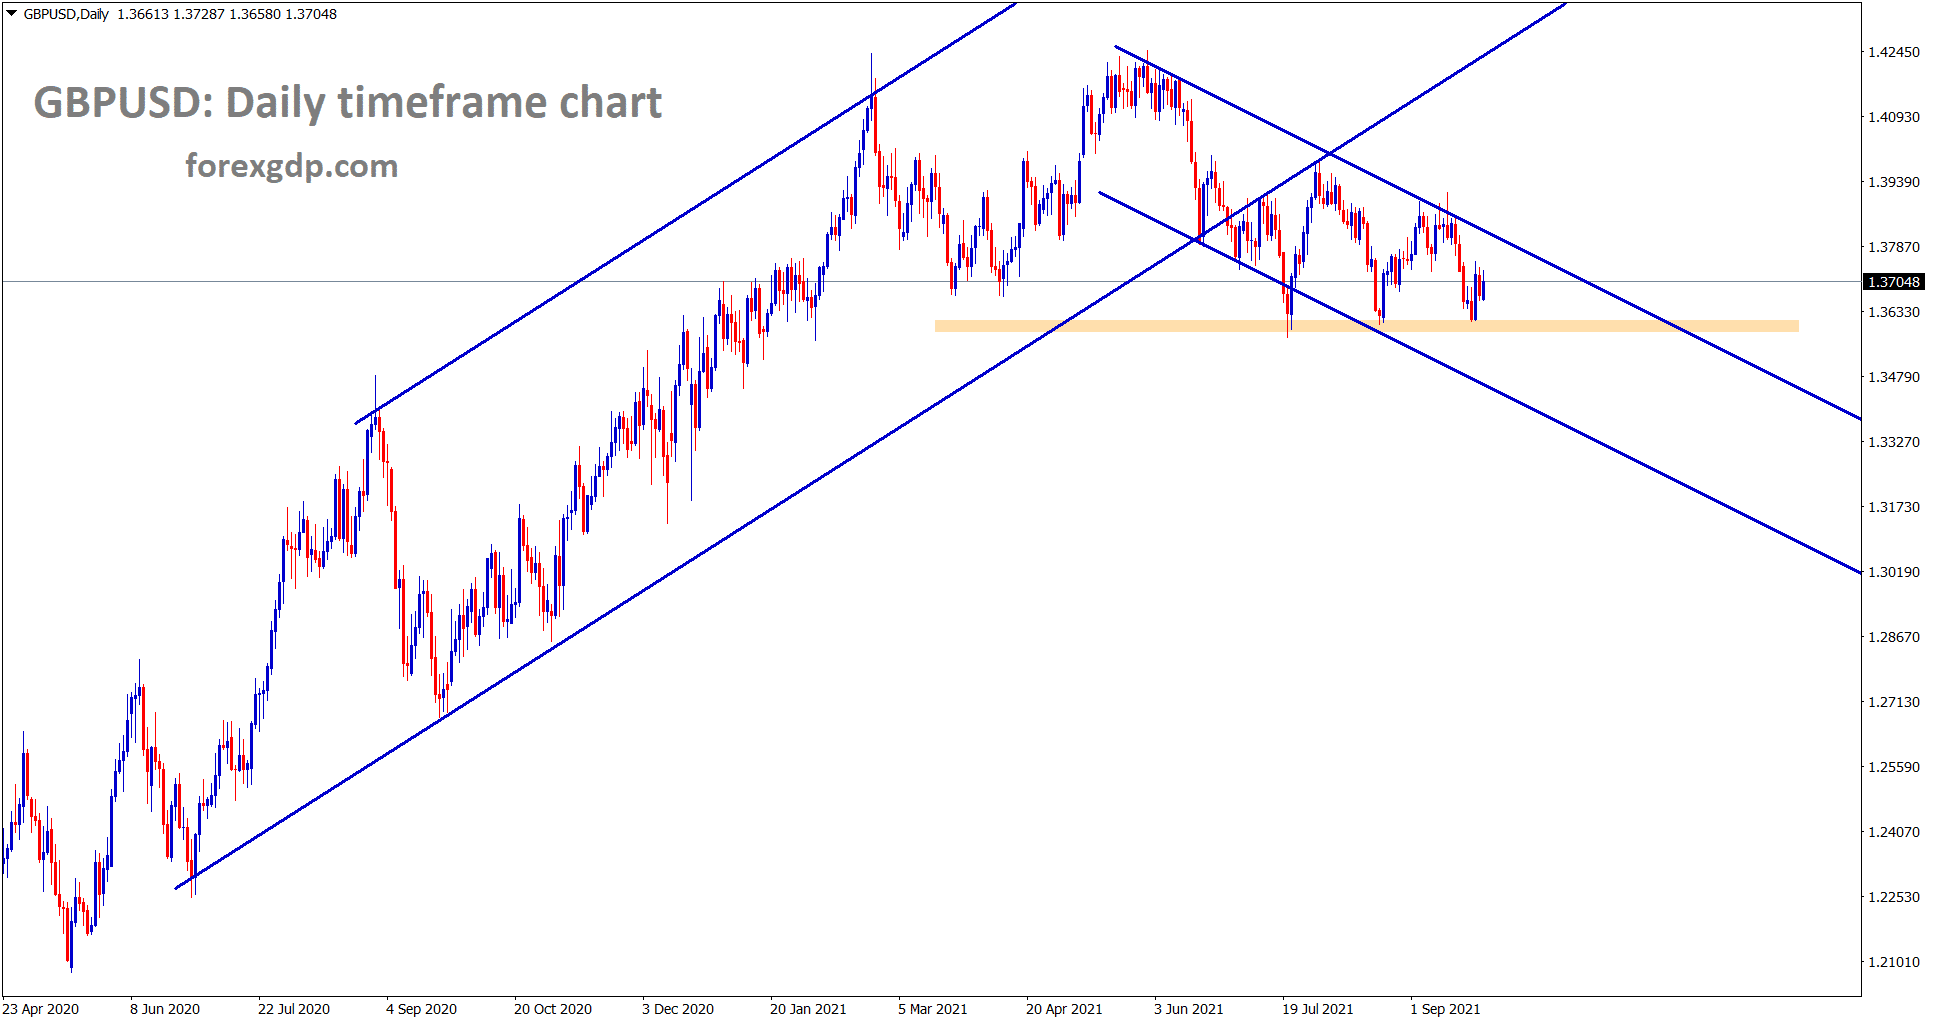 GBPUSD is moving in a channel range and recently the price has rebounded from the support wait for breakout at the support